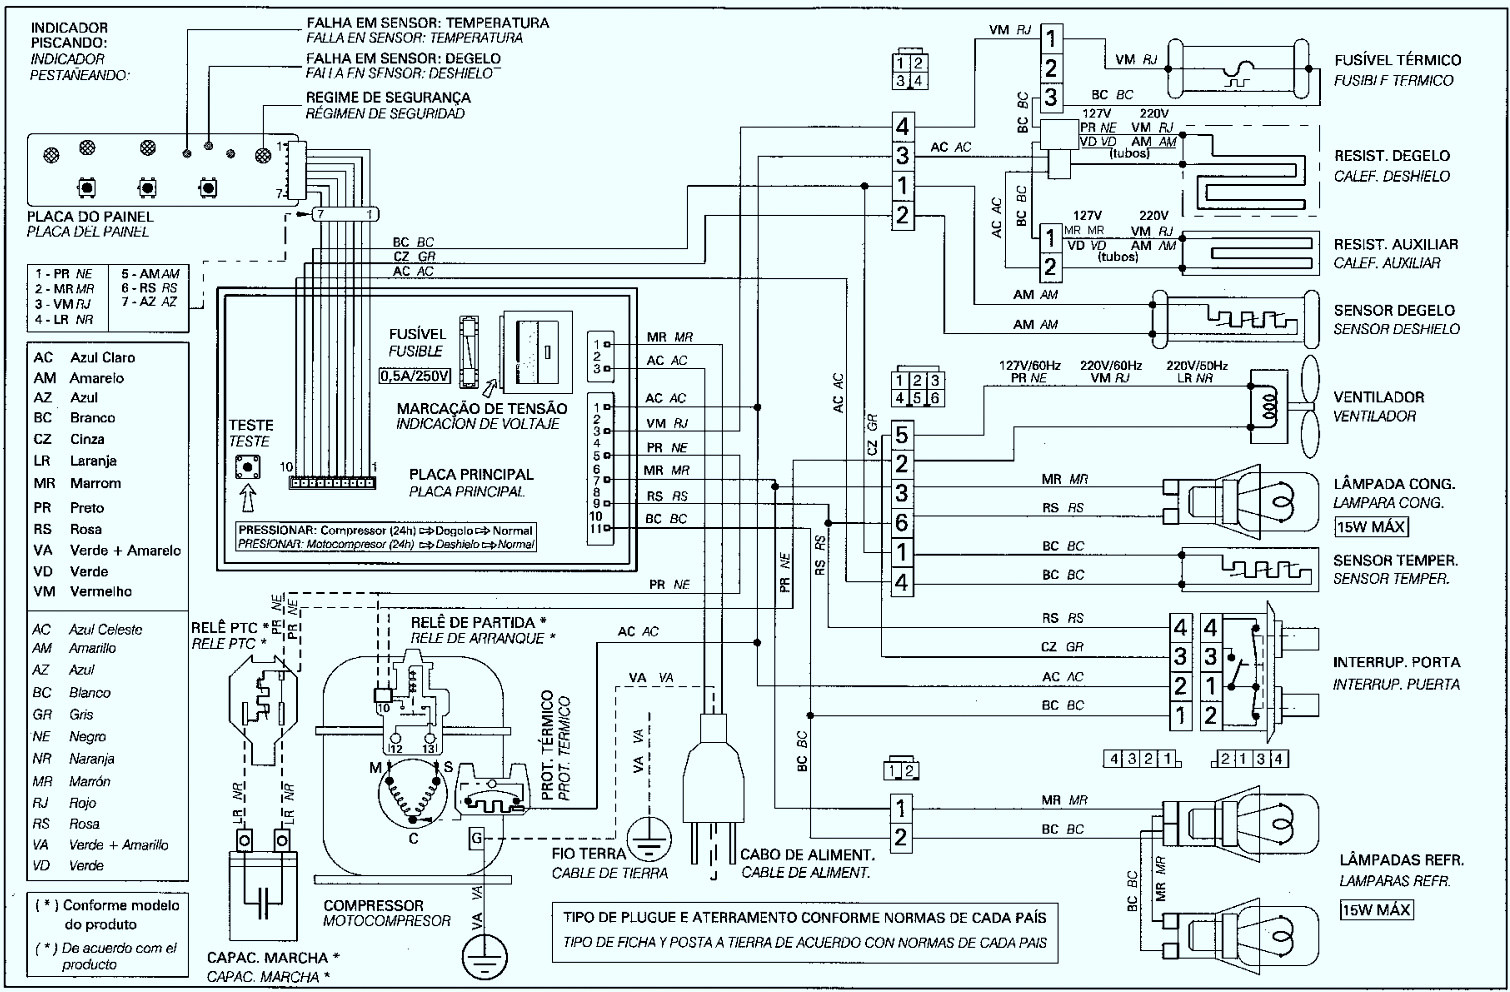 Lr Treadmill Motor Wiring Diagram - Wiring Diagram •